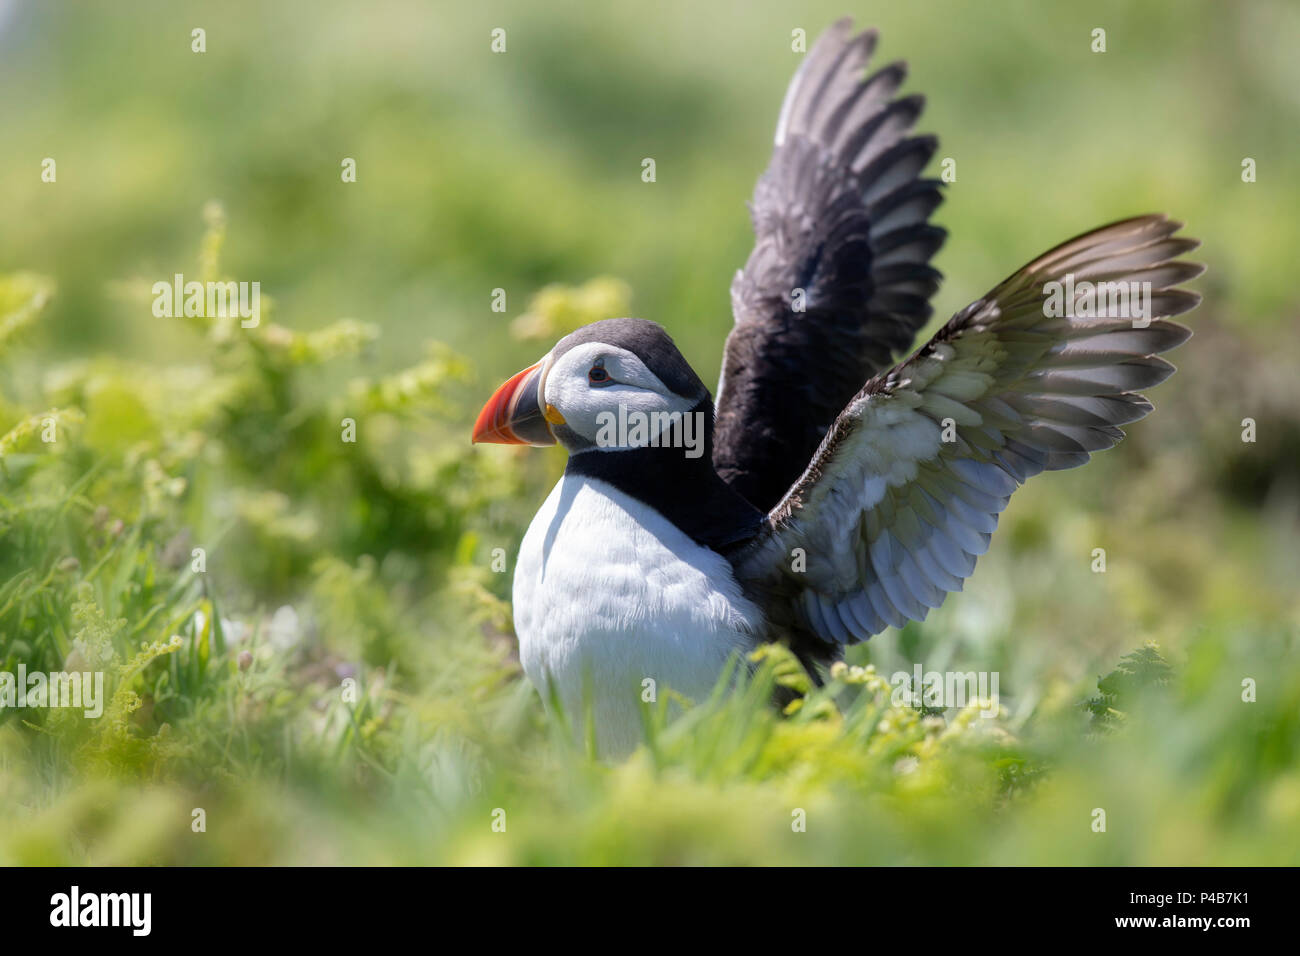 puffin moves its wings - Stock Image